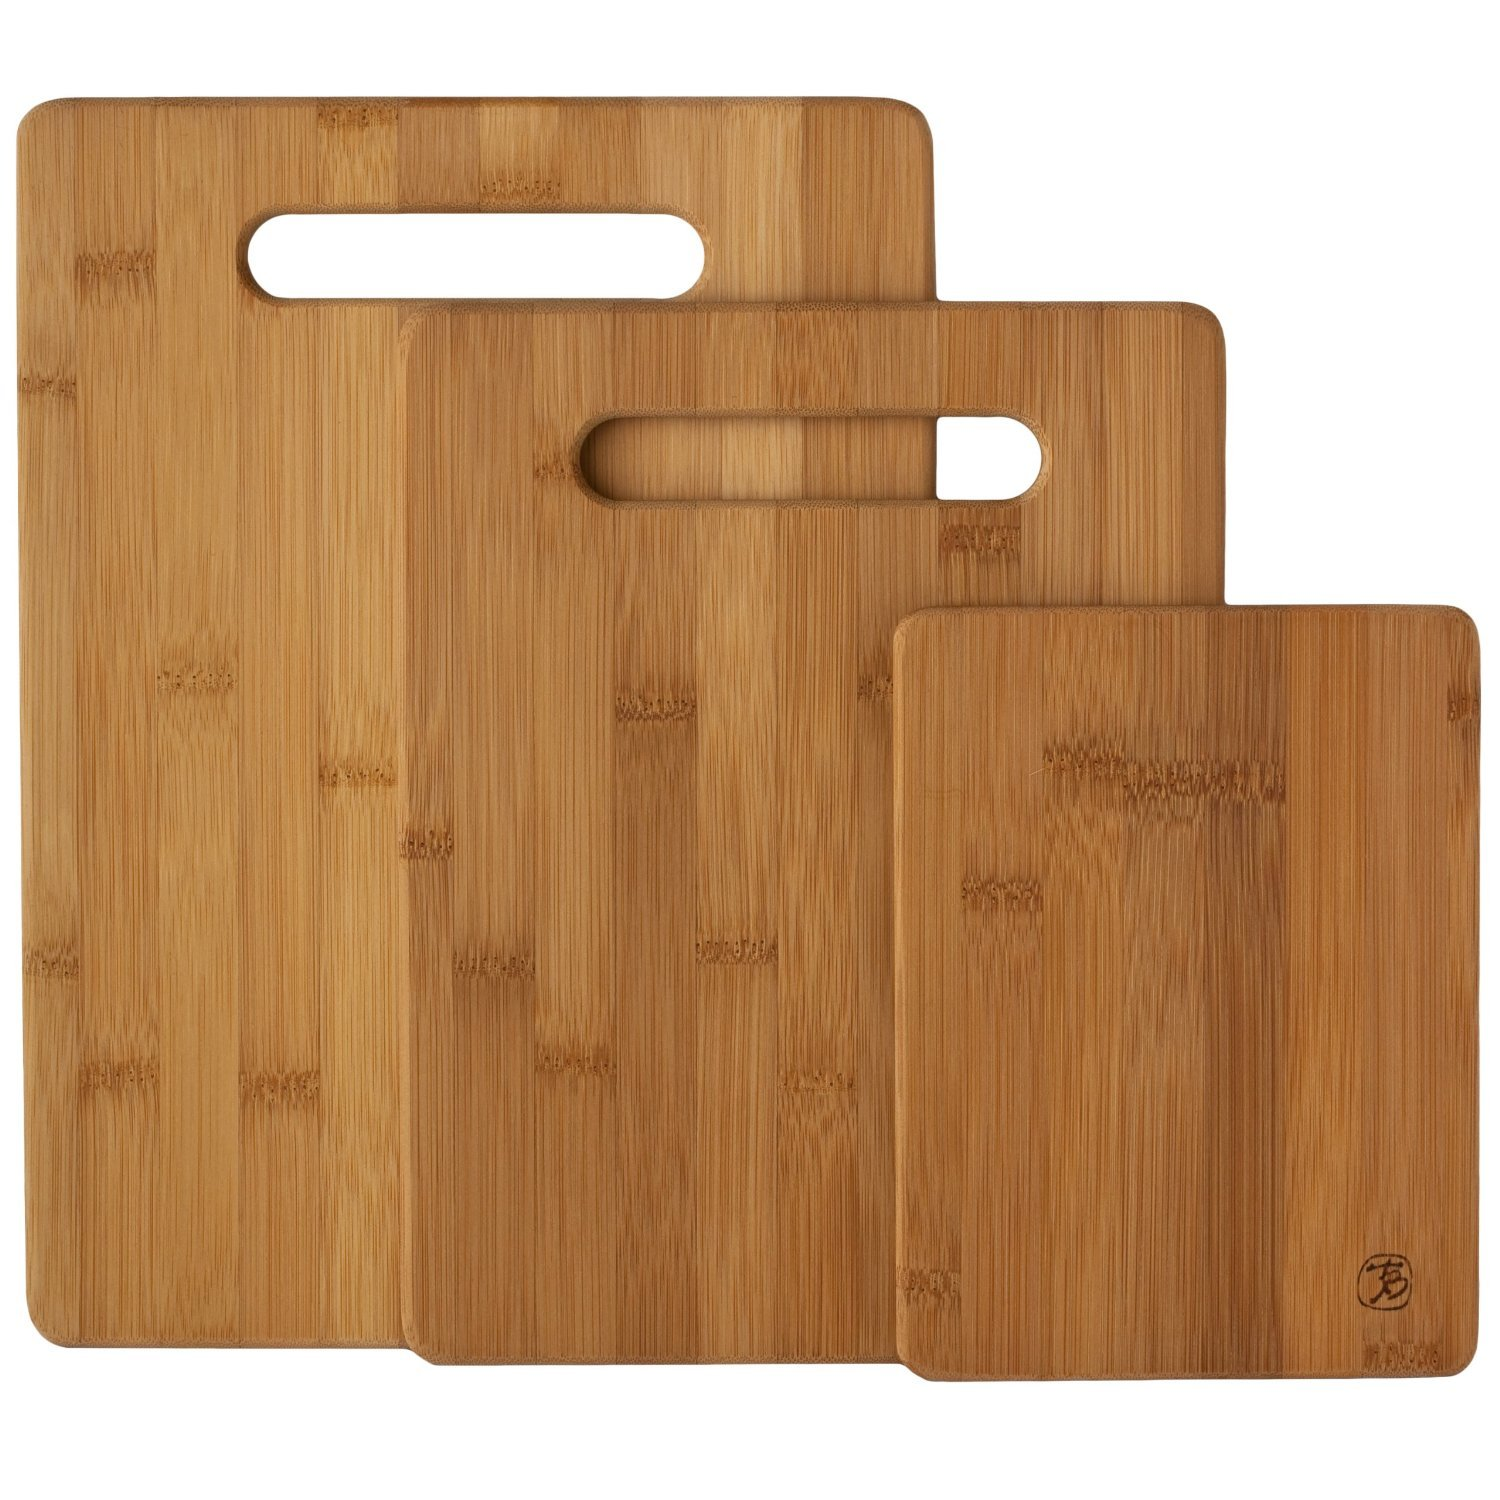 Totally Bamboo 3-Piece Bamboo Serving and Cutting Board Set 20-7930